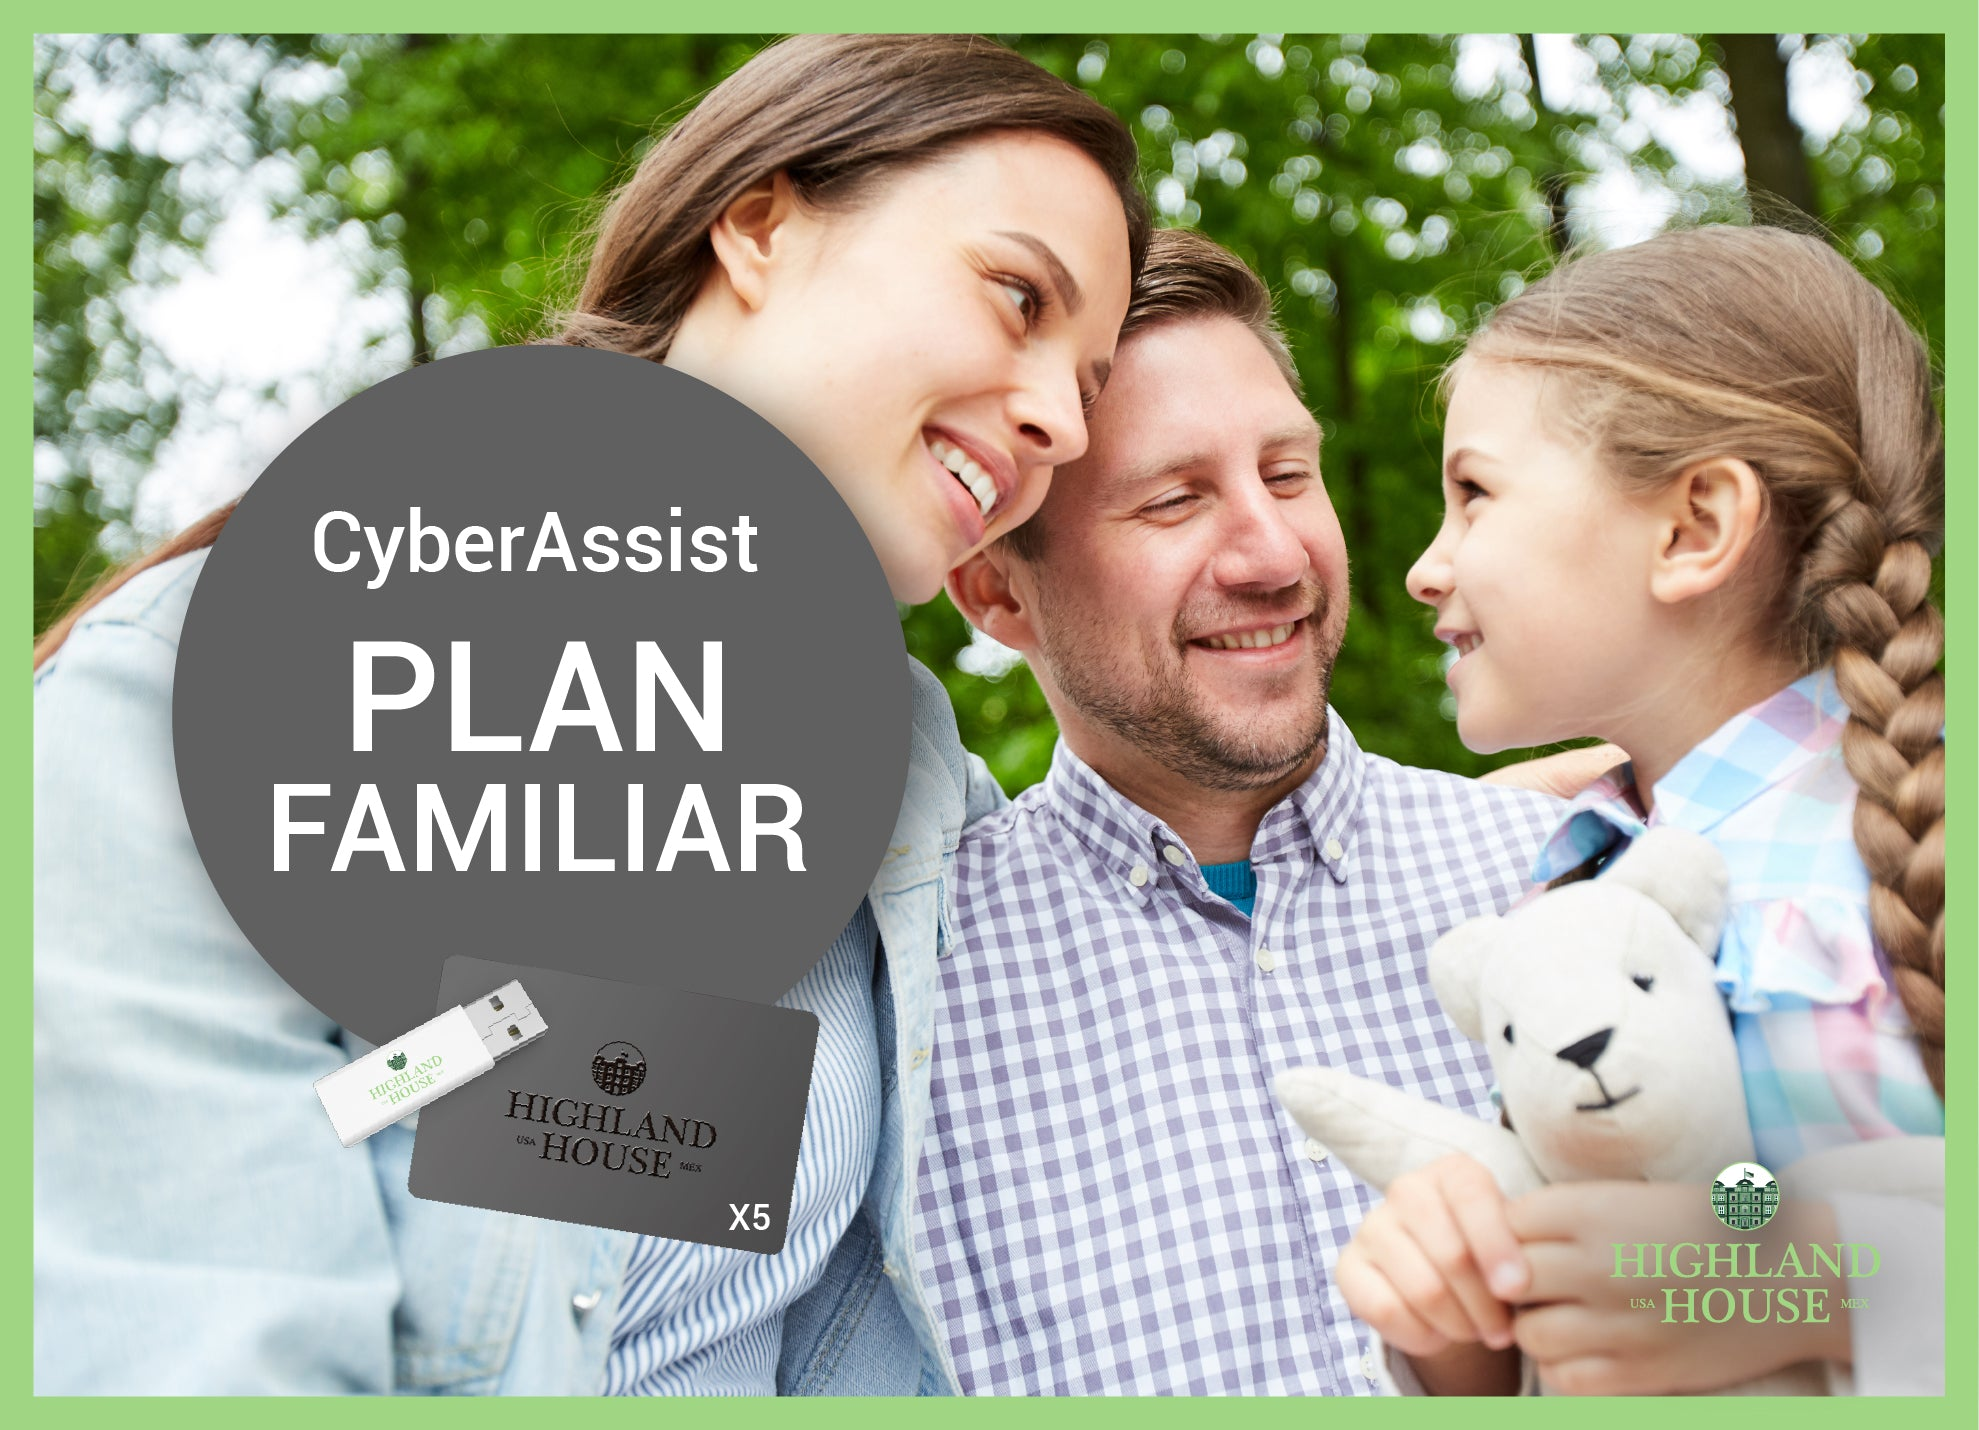 CyberAssist Annual Family Plan